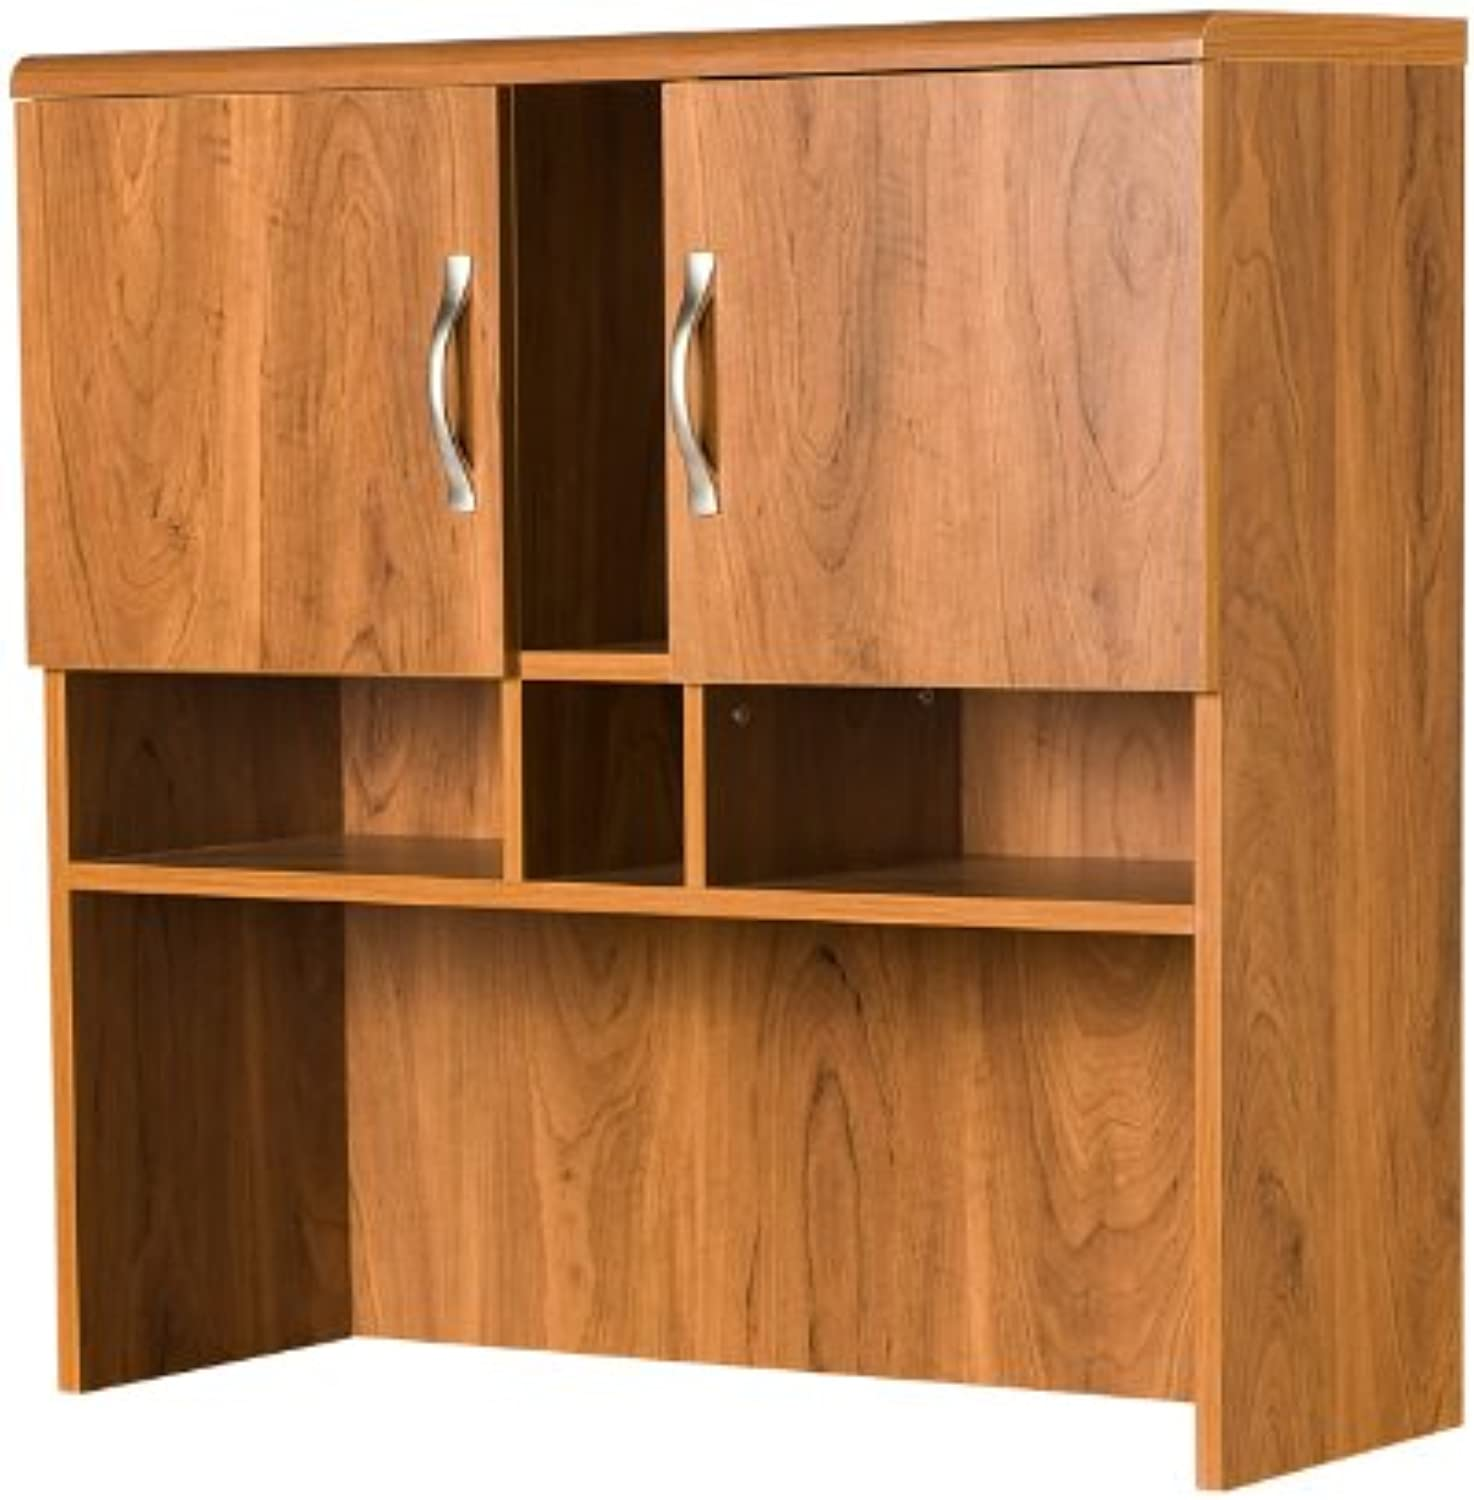 American Furniture Classics Two Door Hutch for Lateral File or Drawer Extension